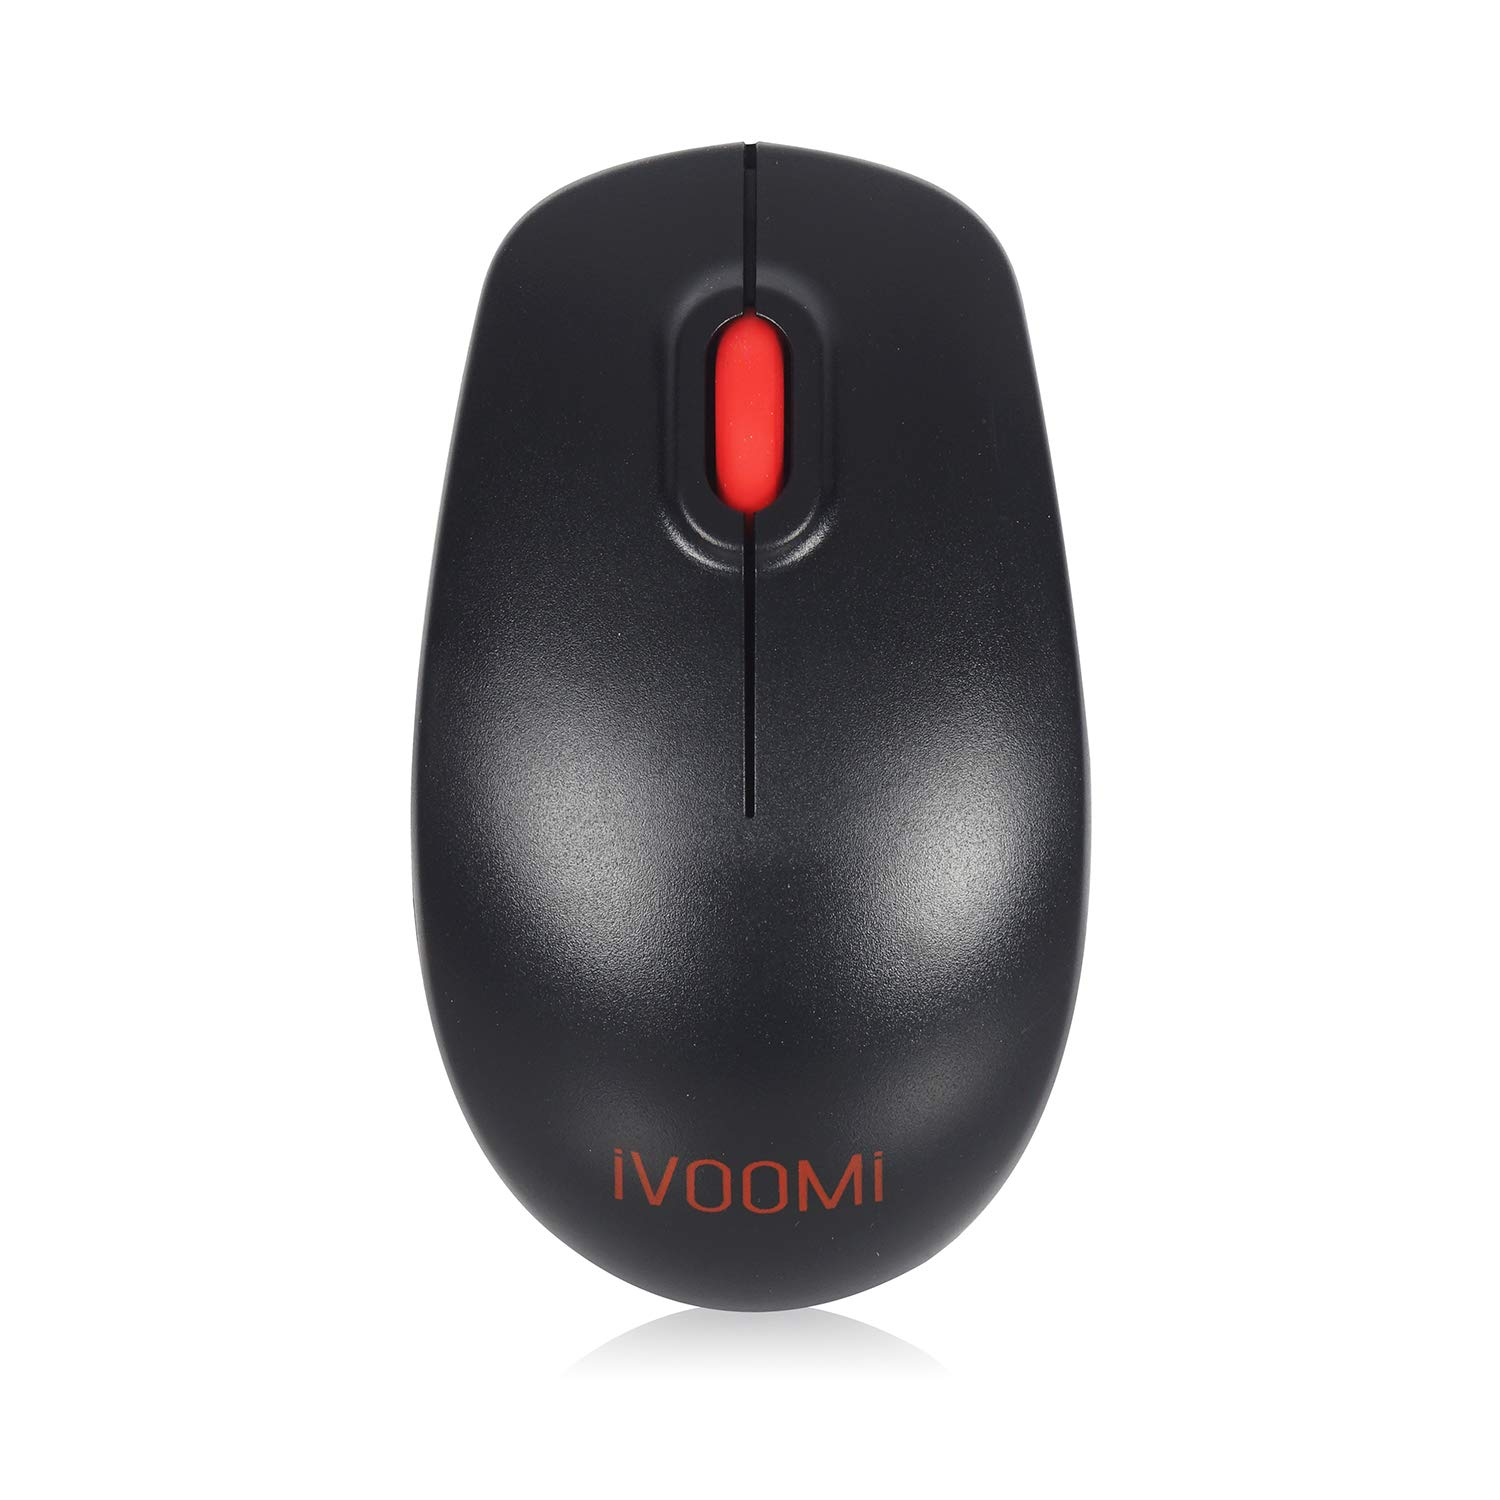 IVOOMI Wireless Mouse